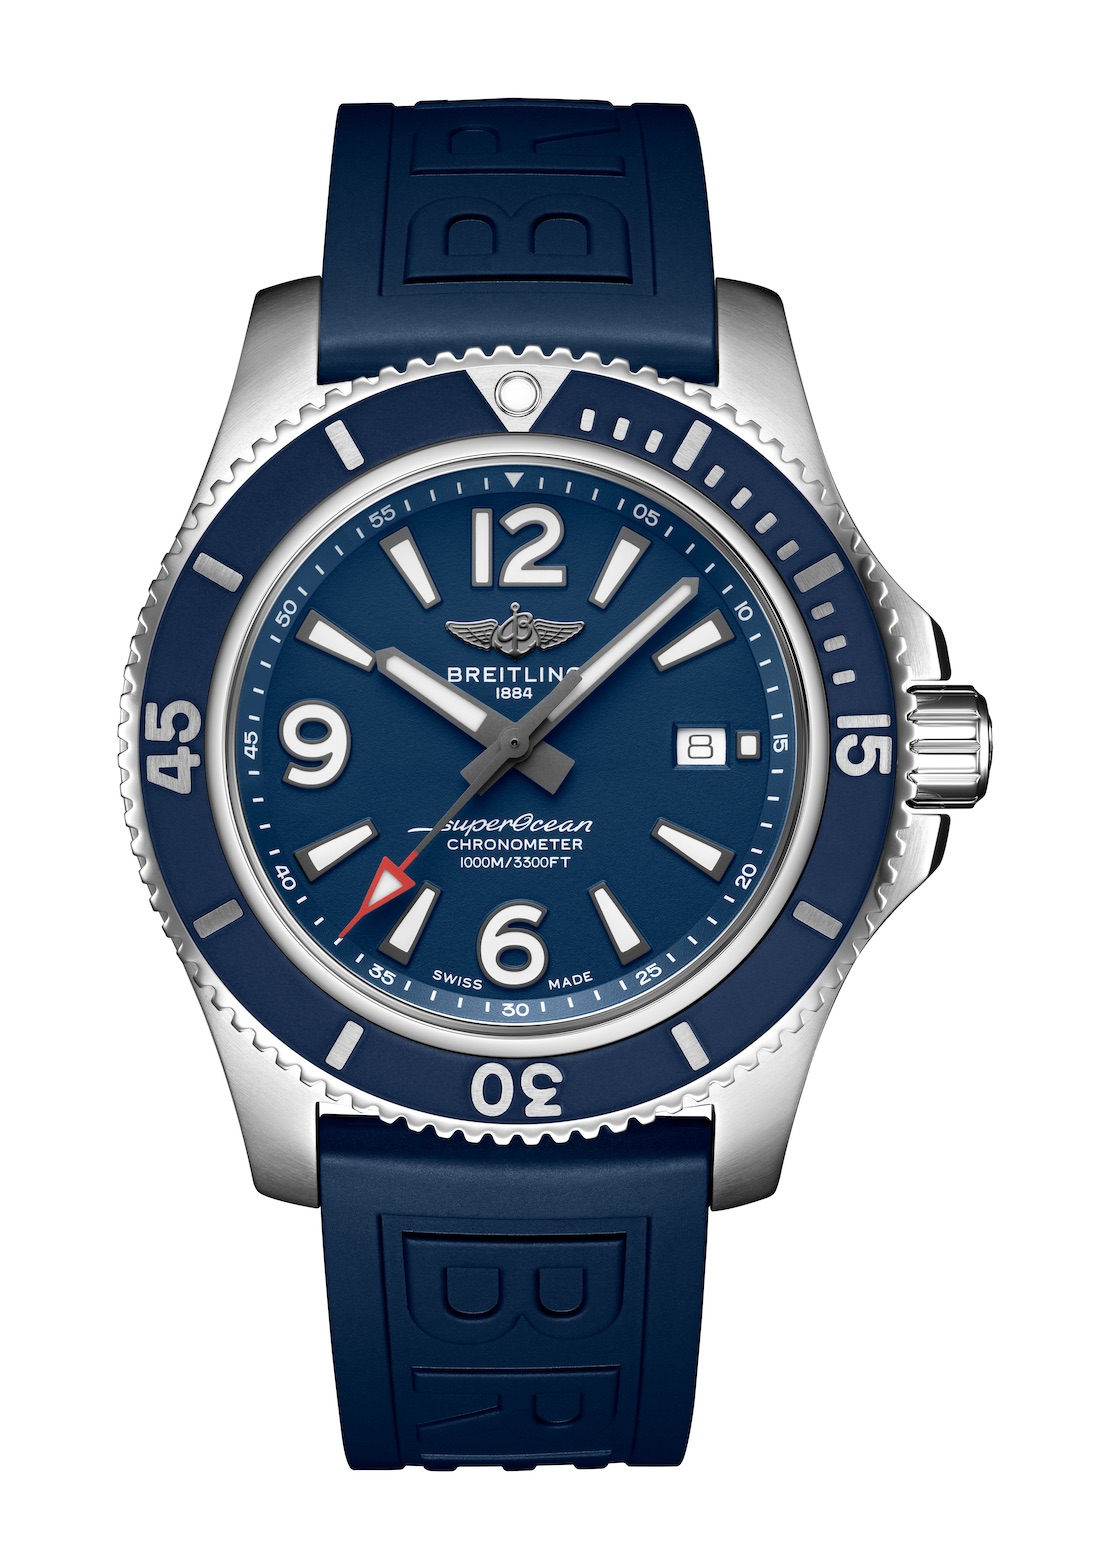 09_Superocean 44 with blue dial and blue Diver Pro III rubber strap_22864_19-03-19.jpeg